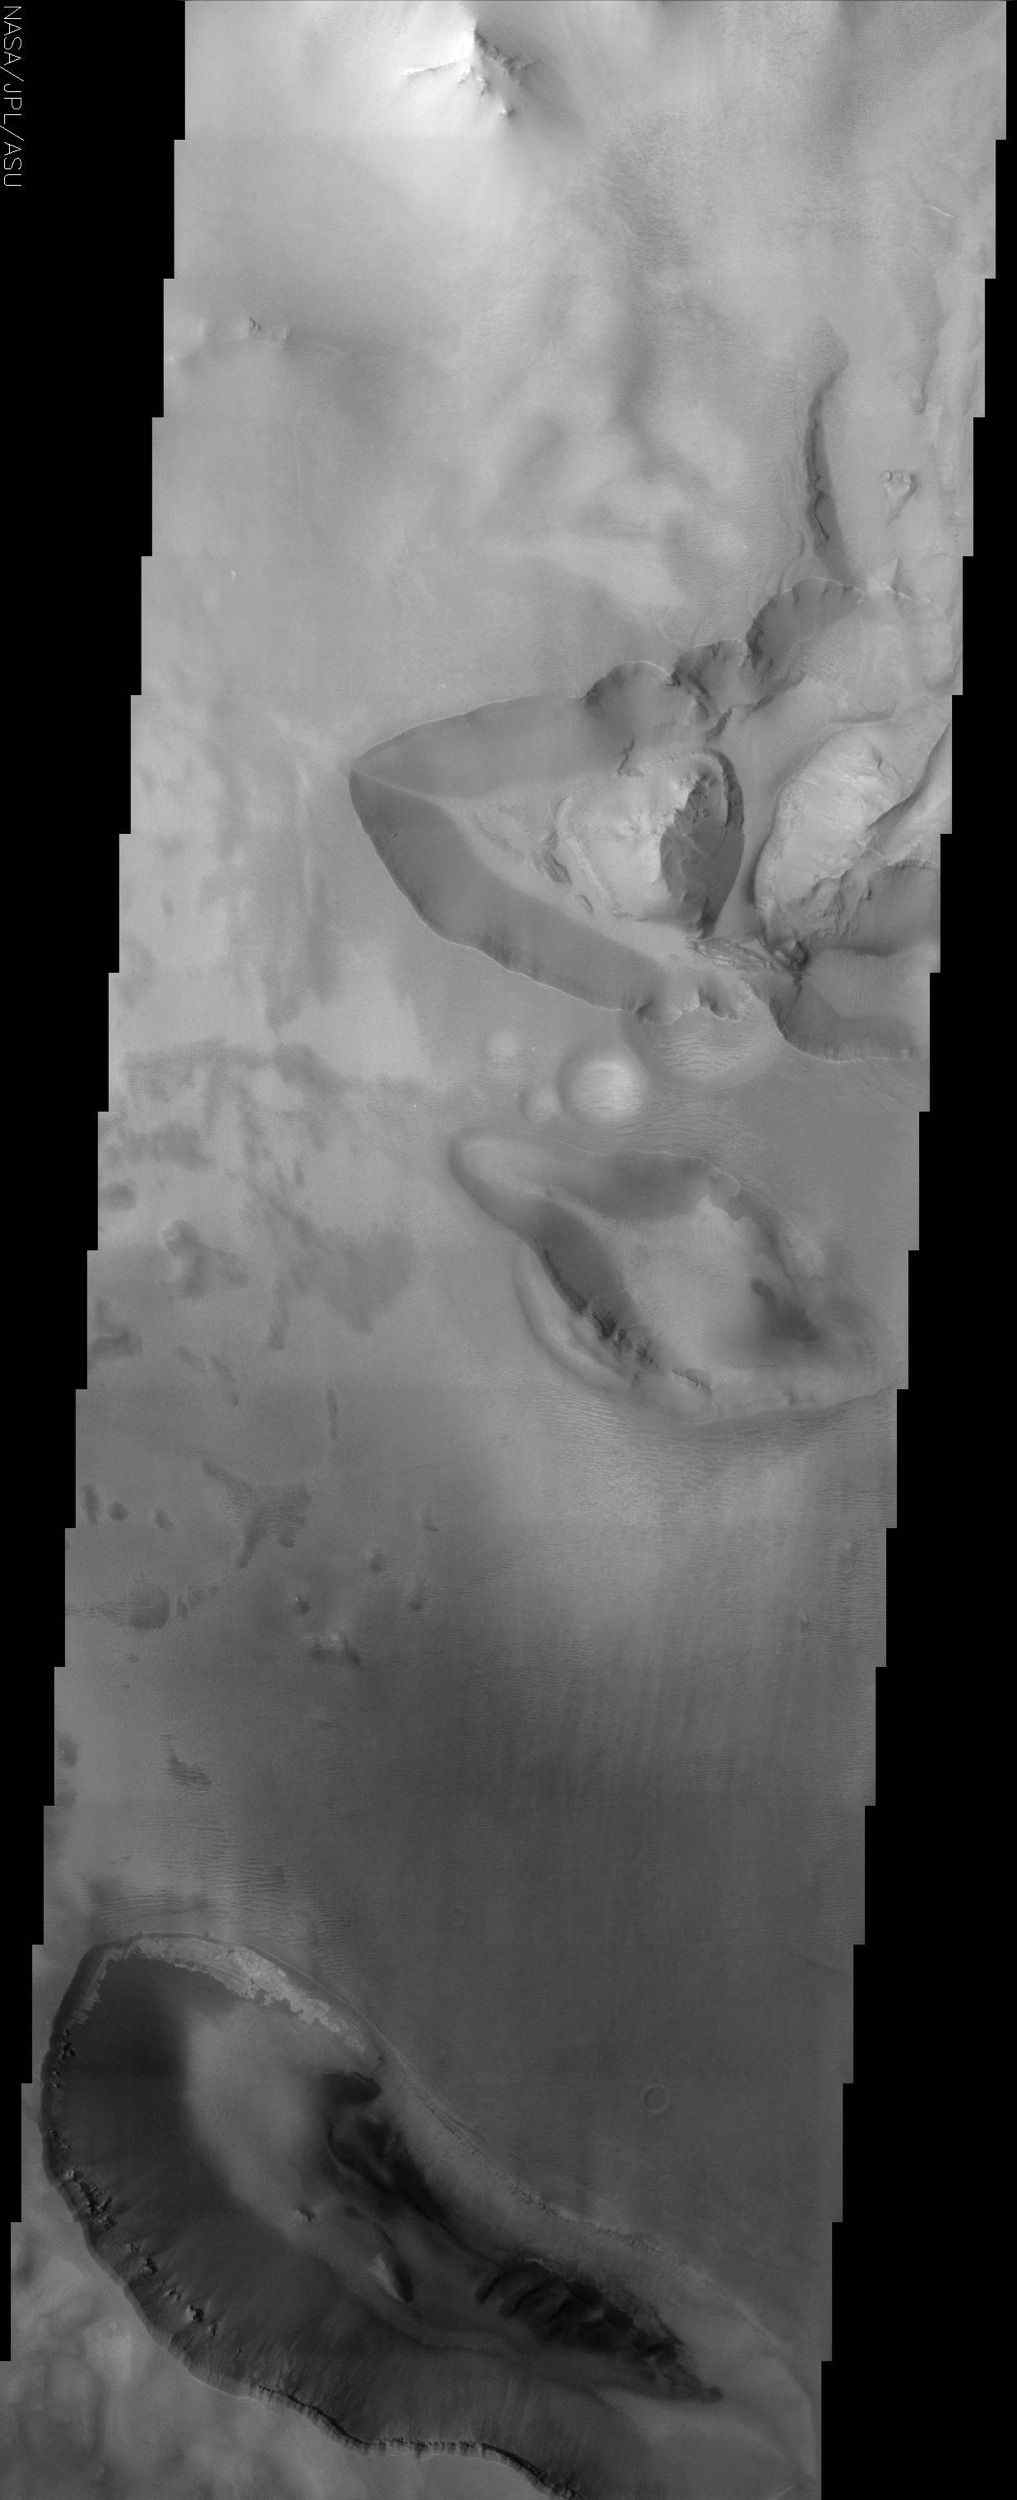 This NASA Mars Odyssey image shows the transition zone between maze-like troughs of Noctis Labyrinthus and the main Valles Marineris canyon system. This huge system of troughs near the equator of Mars was most likely created by tectonic forces.